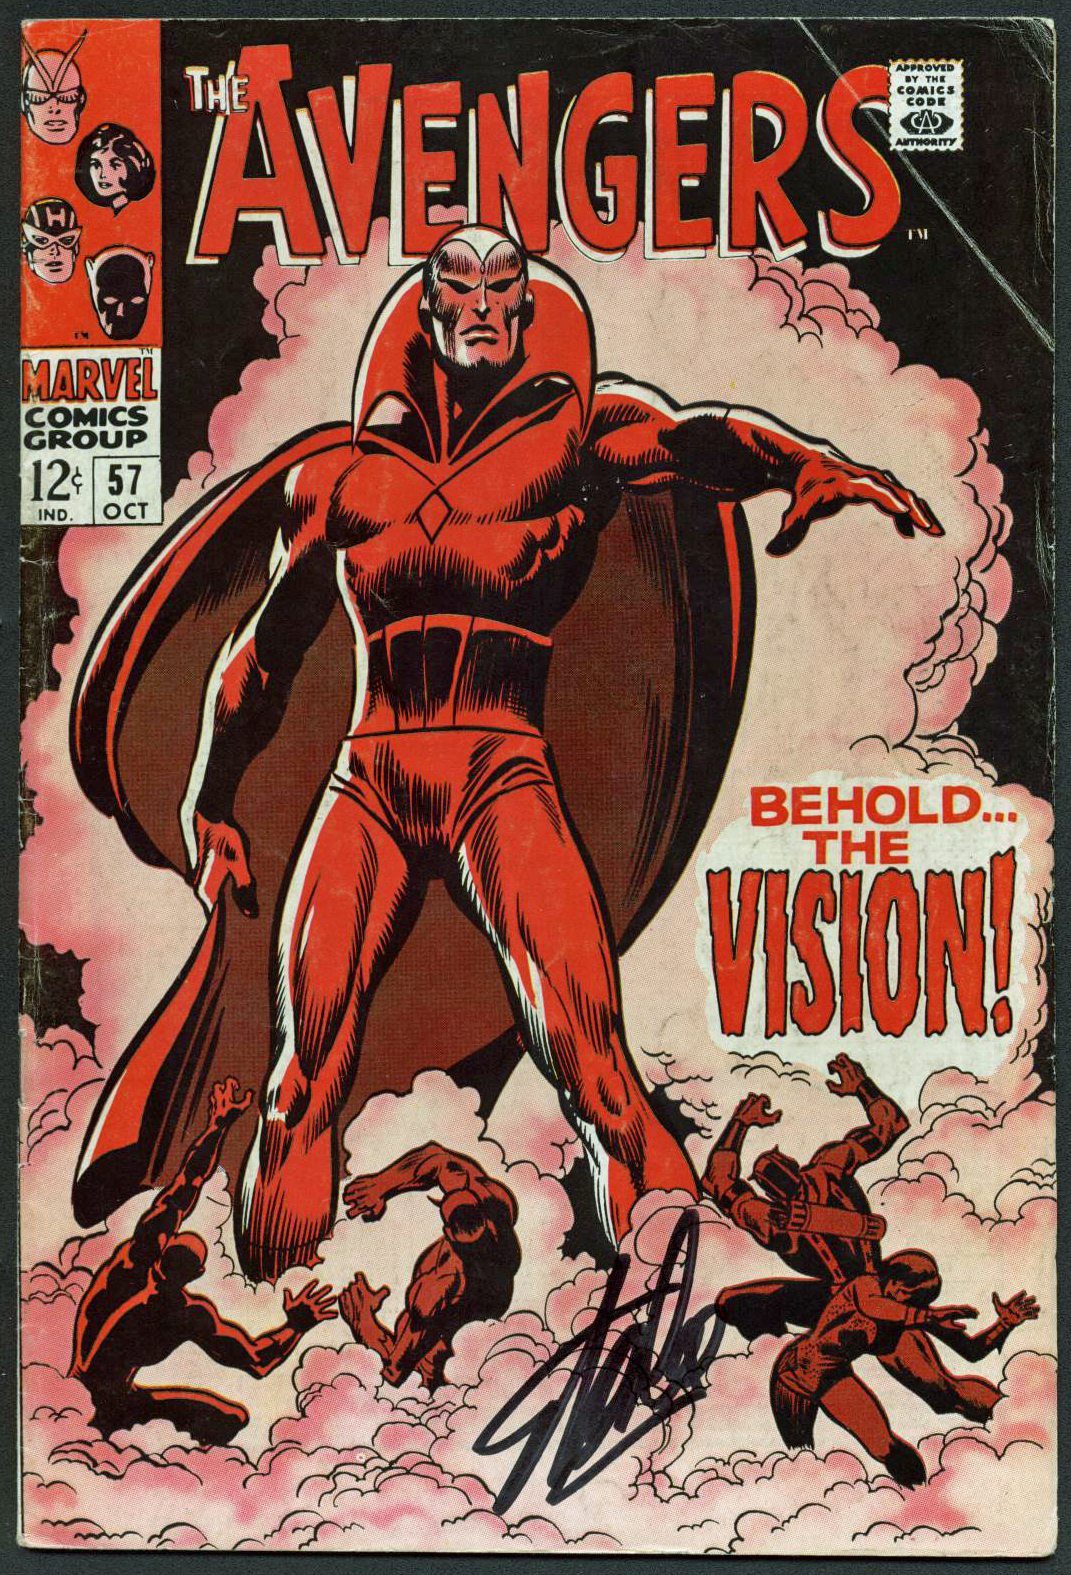 Stan Lee Authentic Signed The Avengers #57 Comic Book The Vision PSA/DNA #Z04183